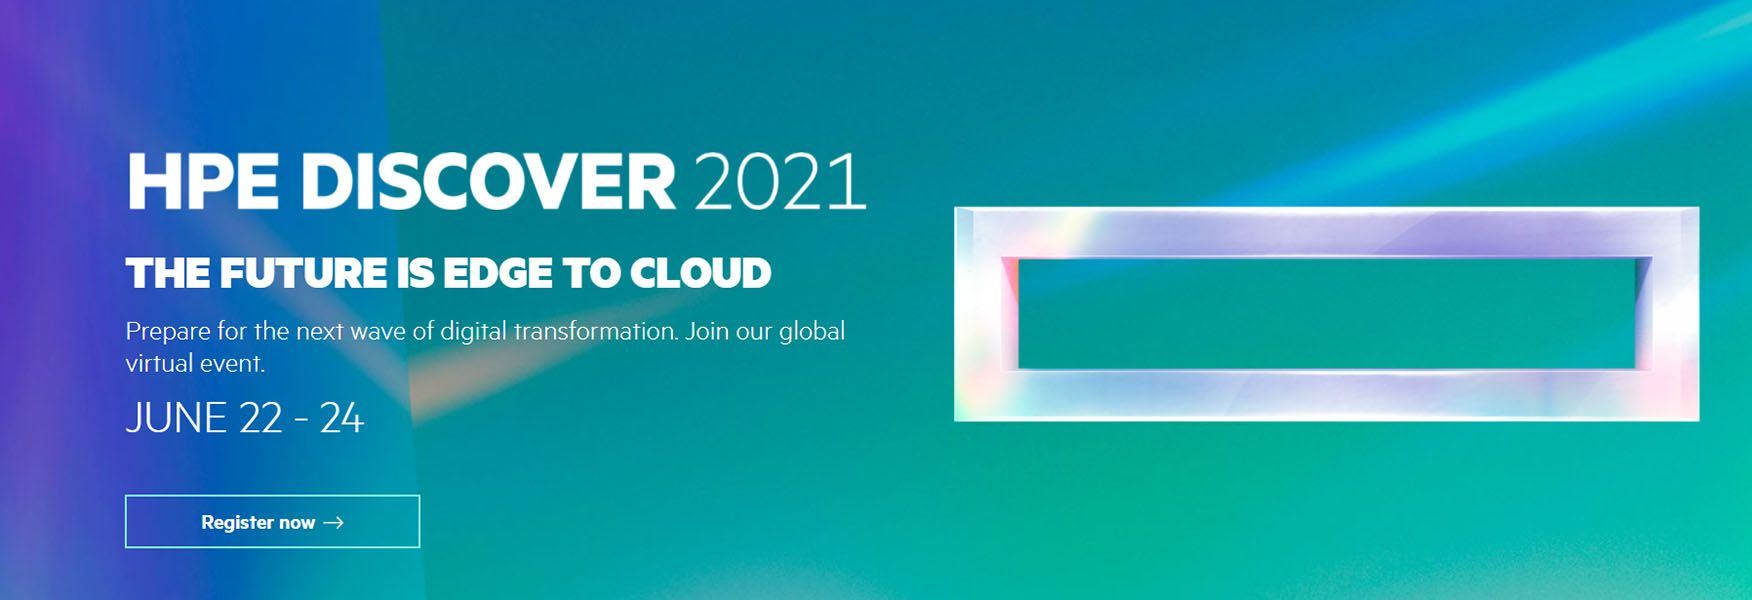 HPE Discover 2021